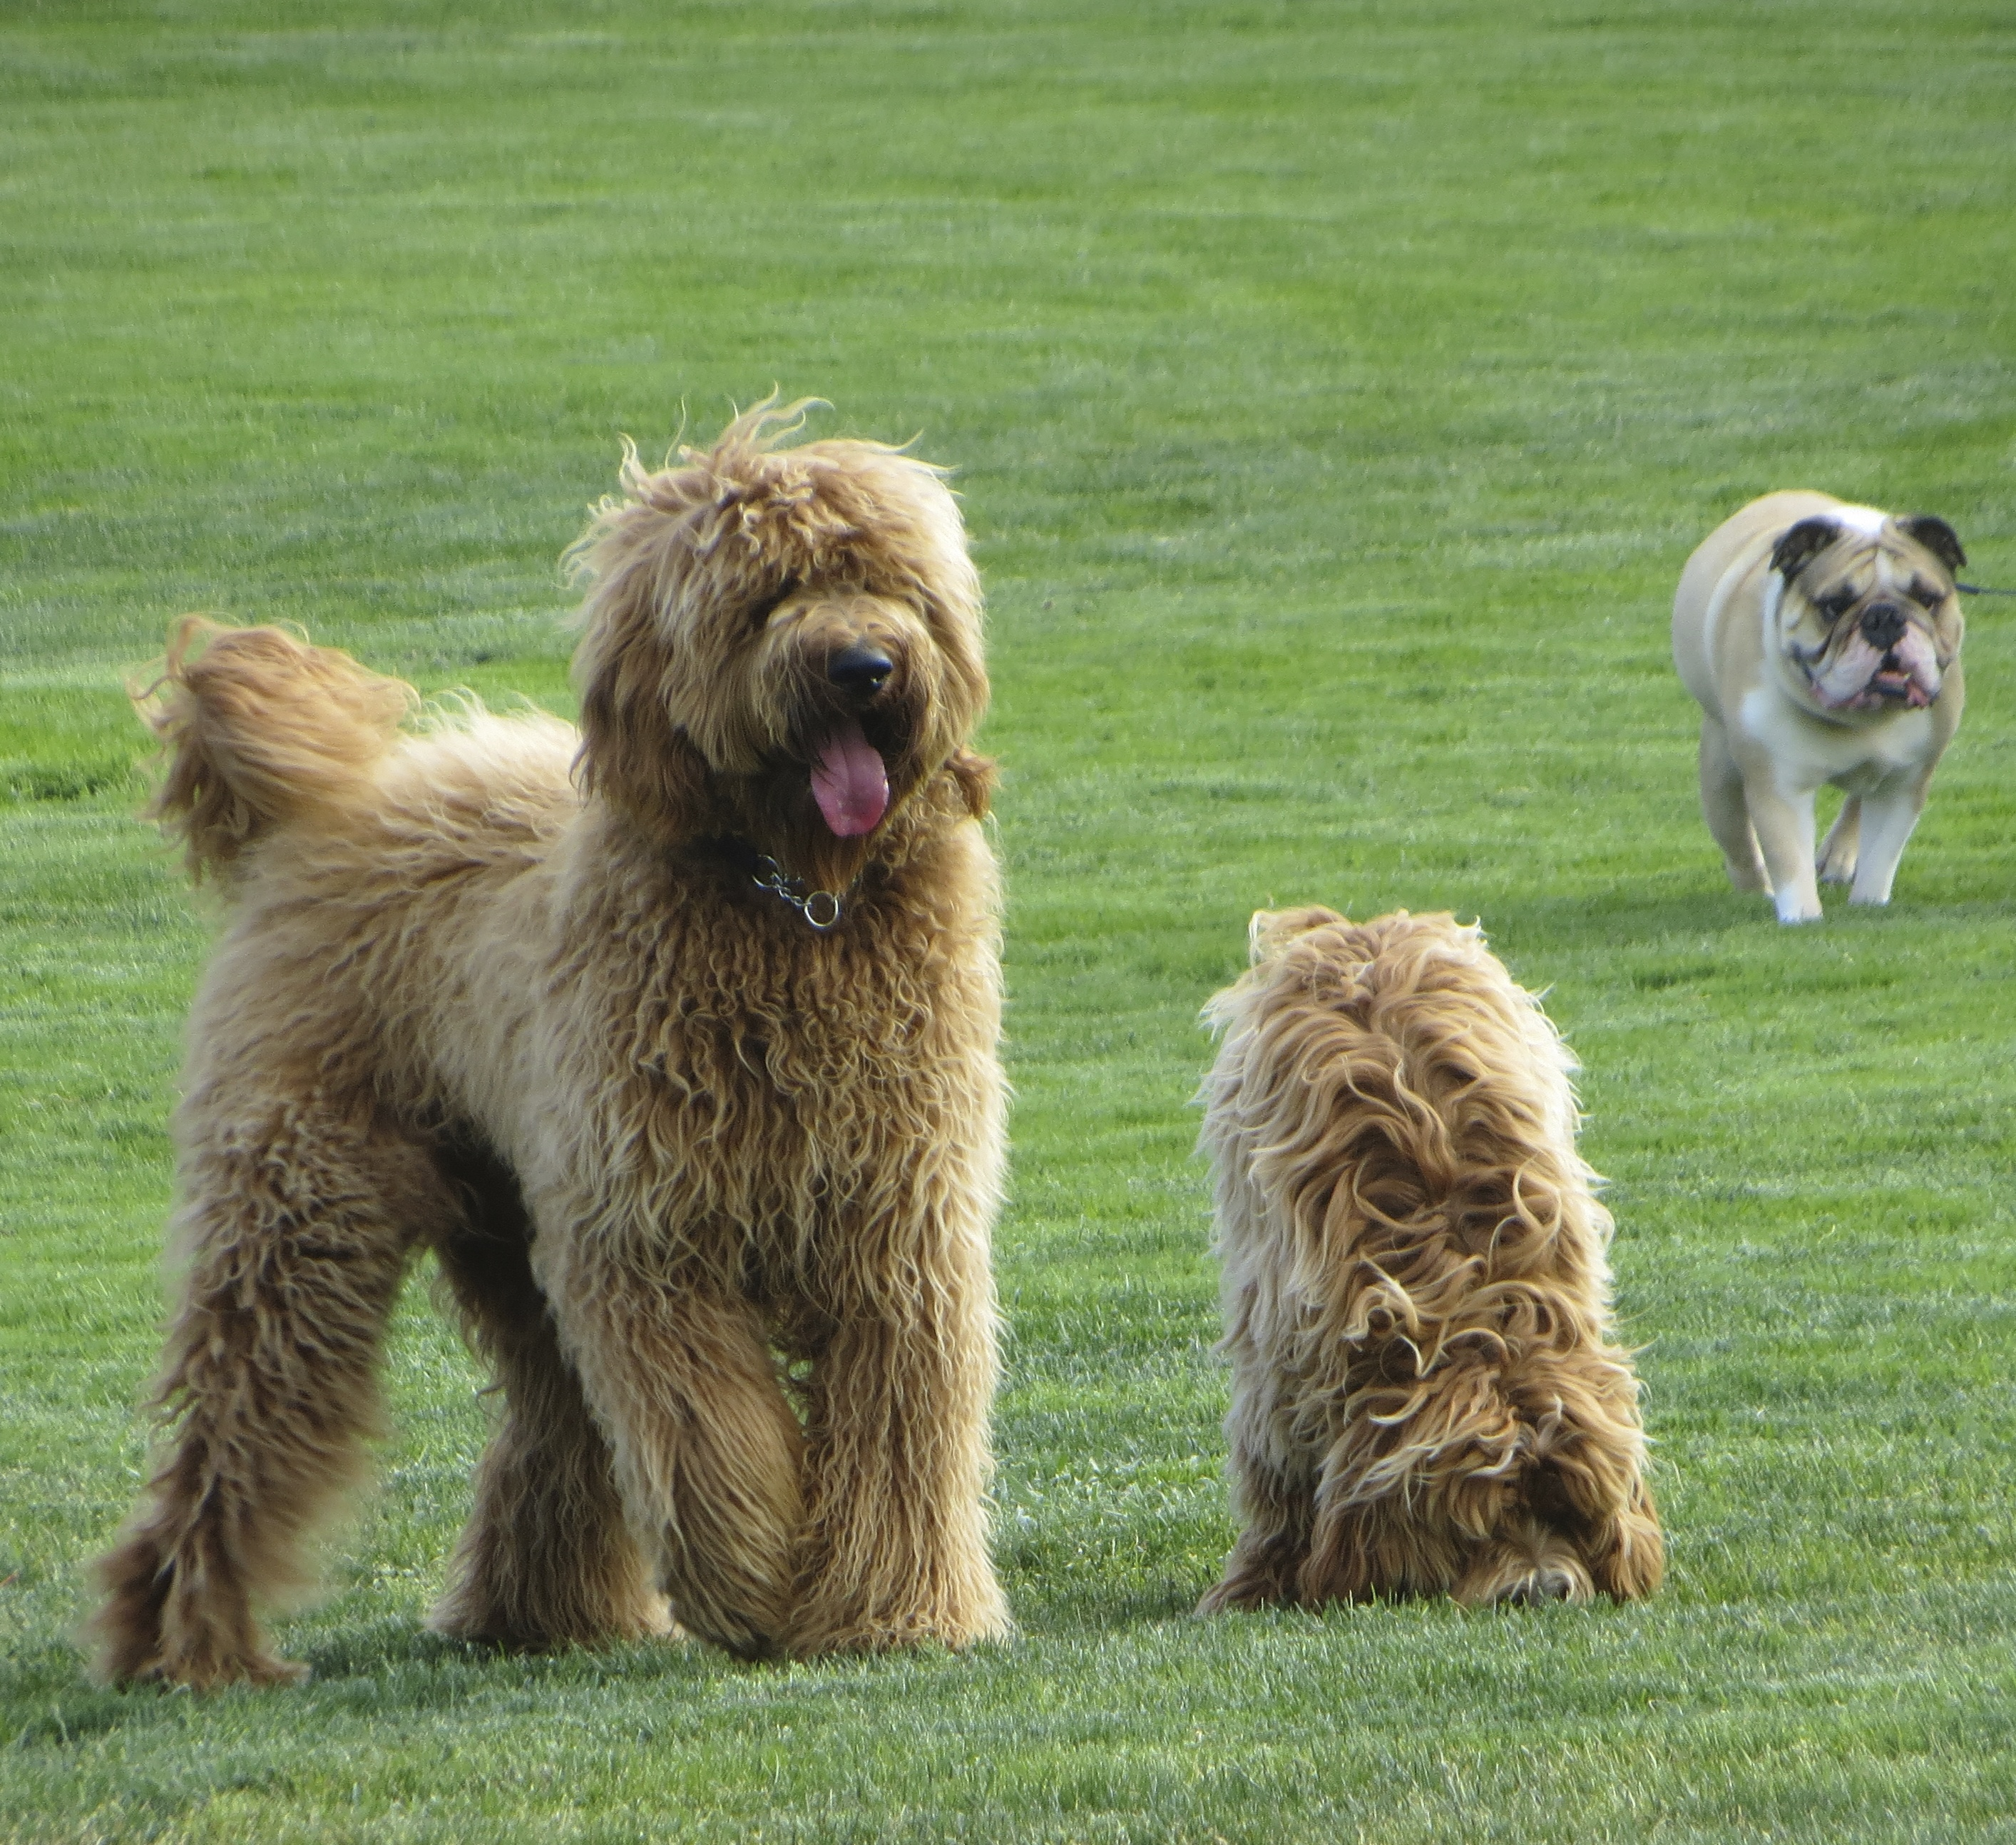 Golden-colored Goldendoodle, Brown/Gold Labradoodle, and Fawn and White English Bulldog